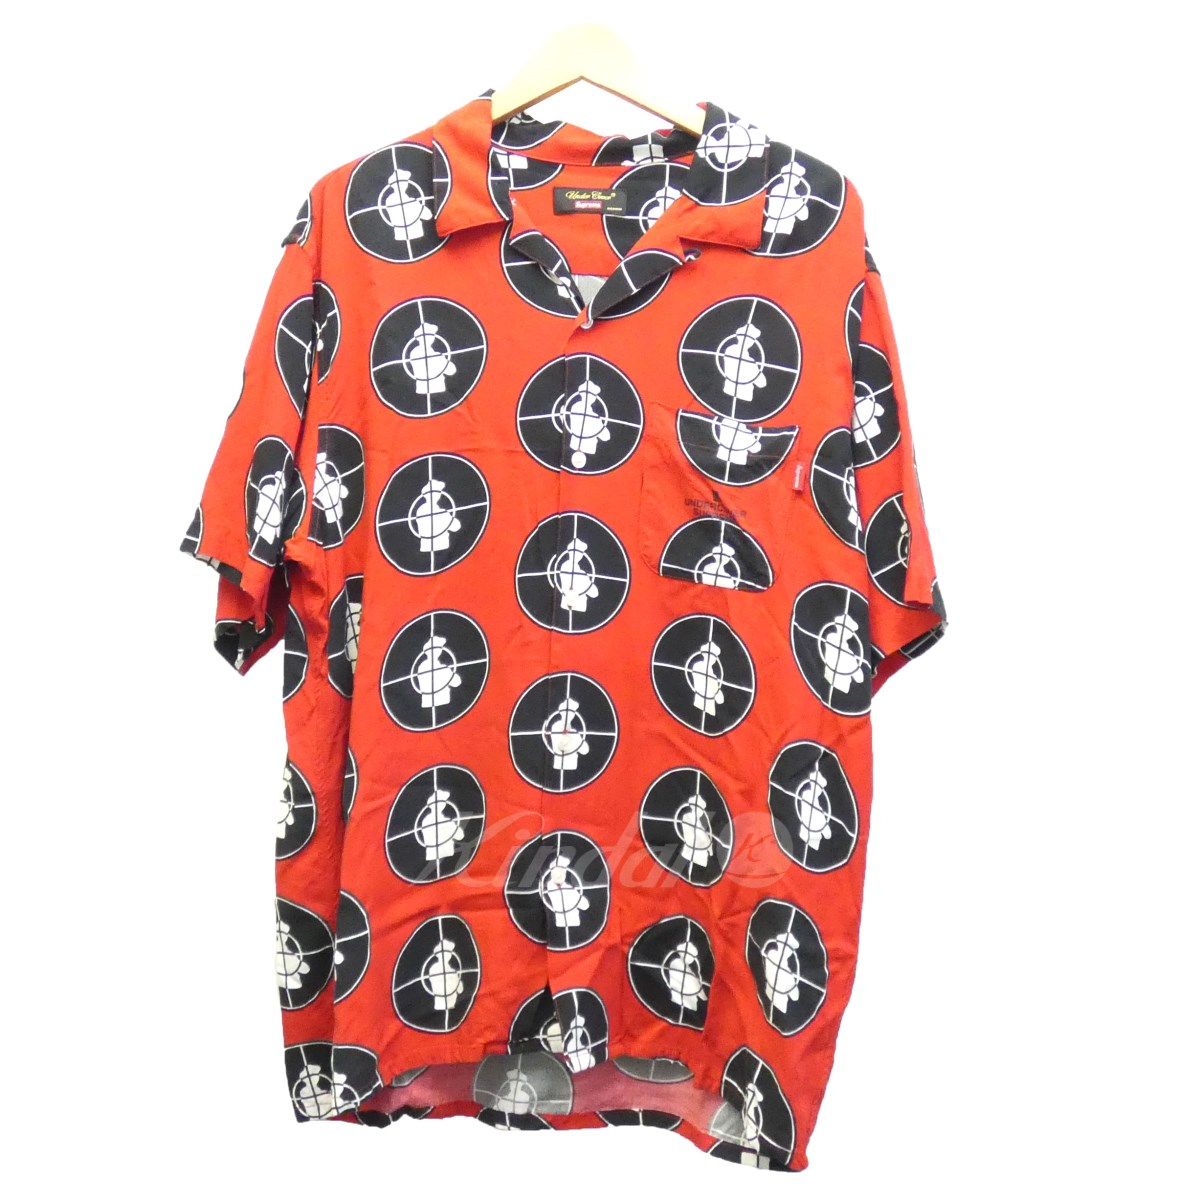 【中古】SUPREME×UNDER COVER 18SS「Public Enemy rayon shirt」半袖シャツ 【送料無料】 【081248】 【KIND1550】